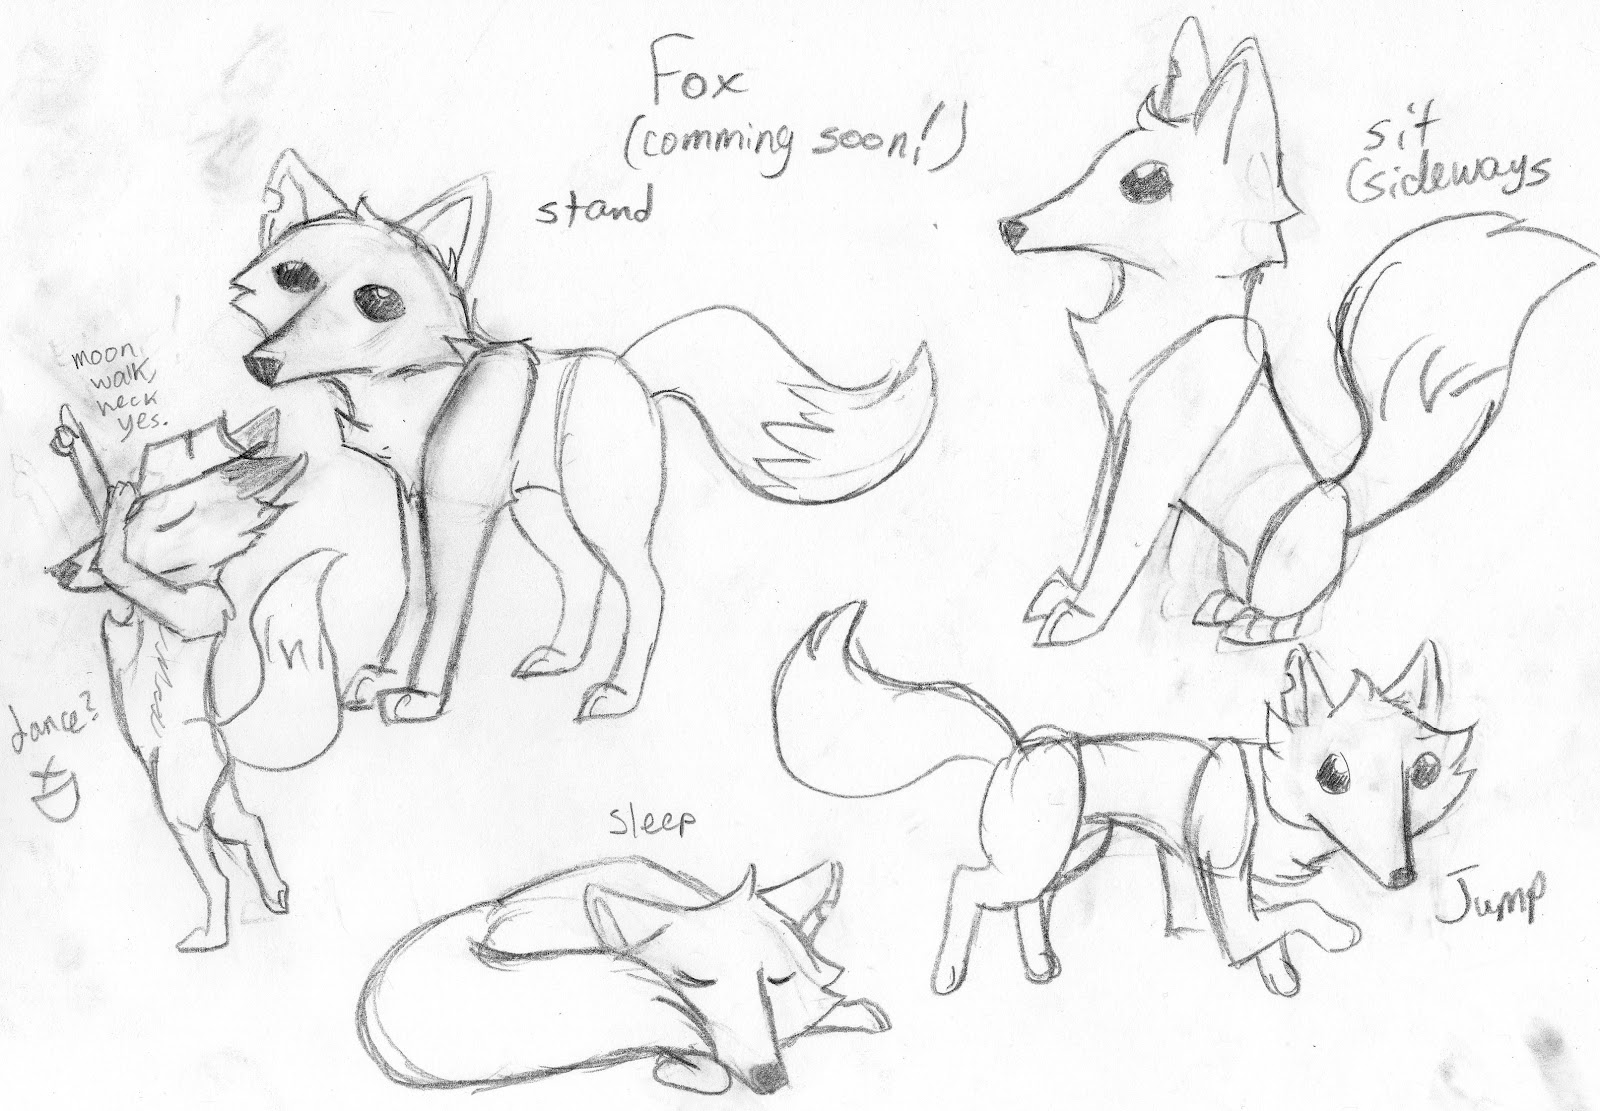 This is an image of Lively Animal Jam Fox Drawing